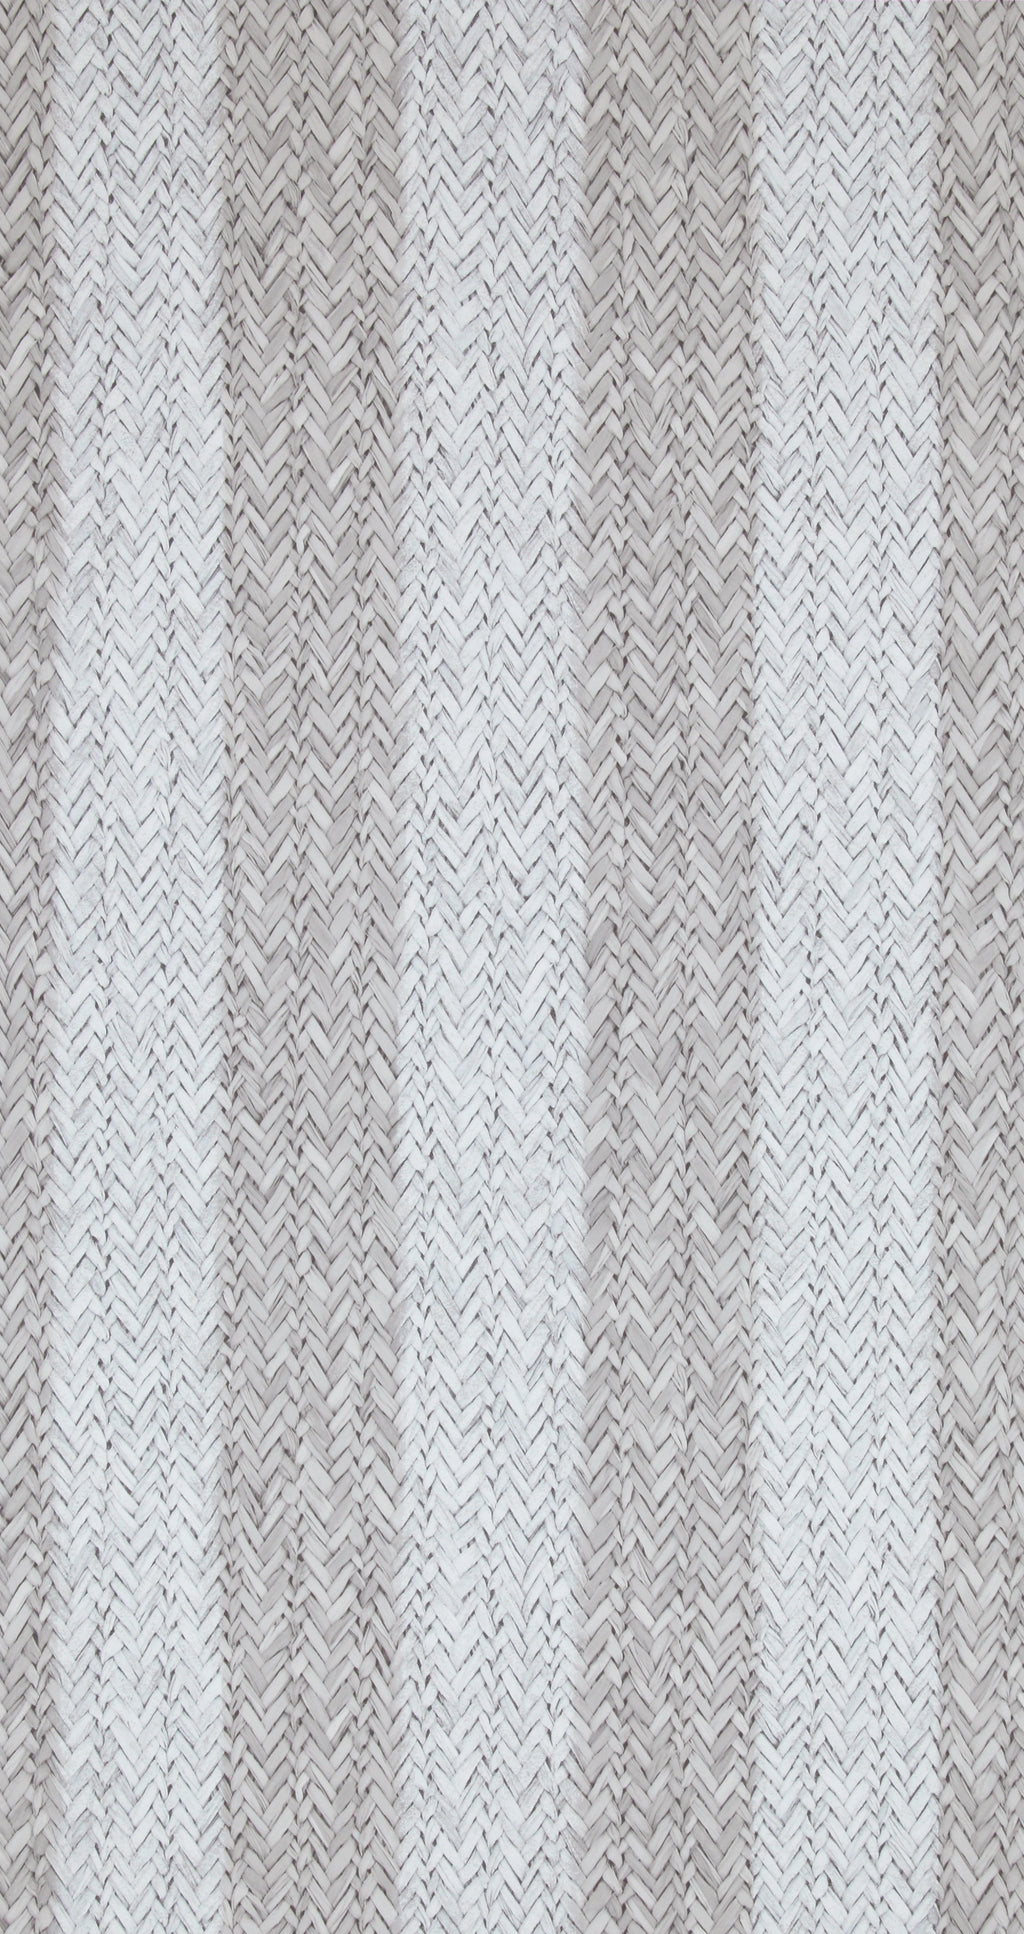 Striped Woven Abalone Braid Wallpaper R4318